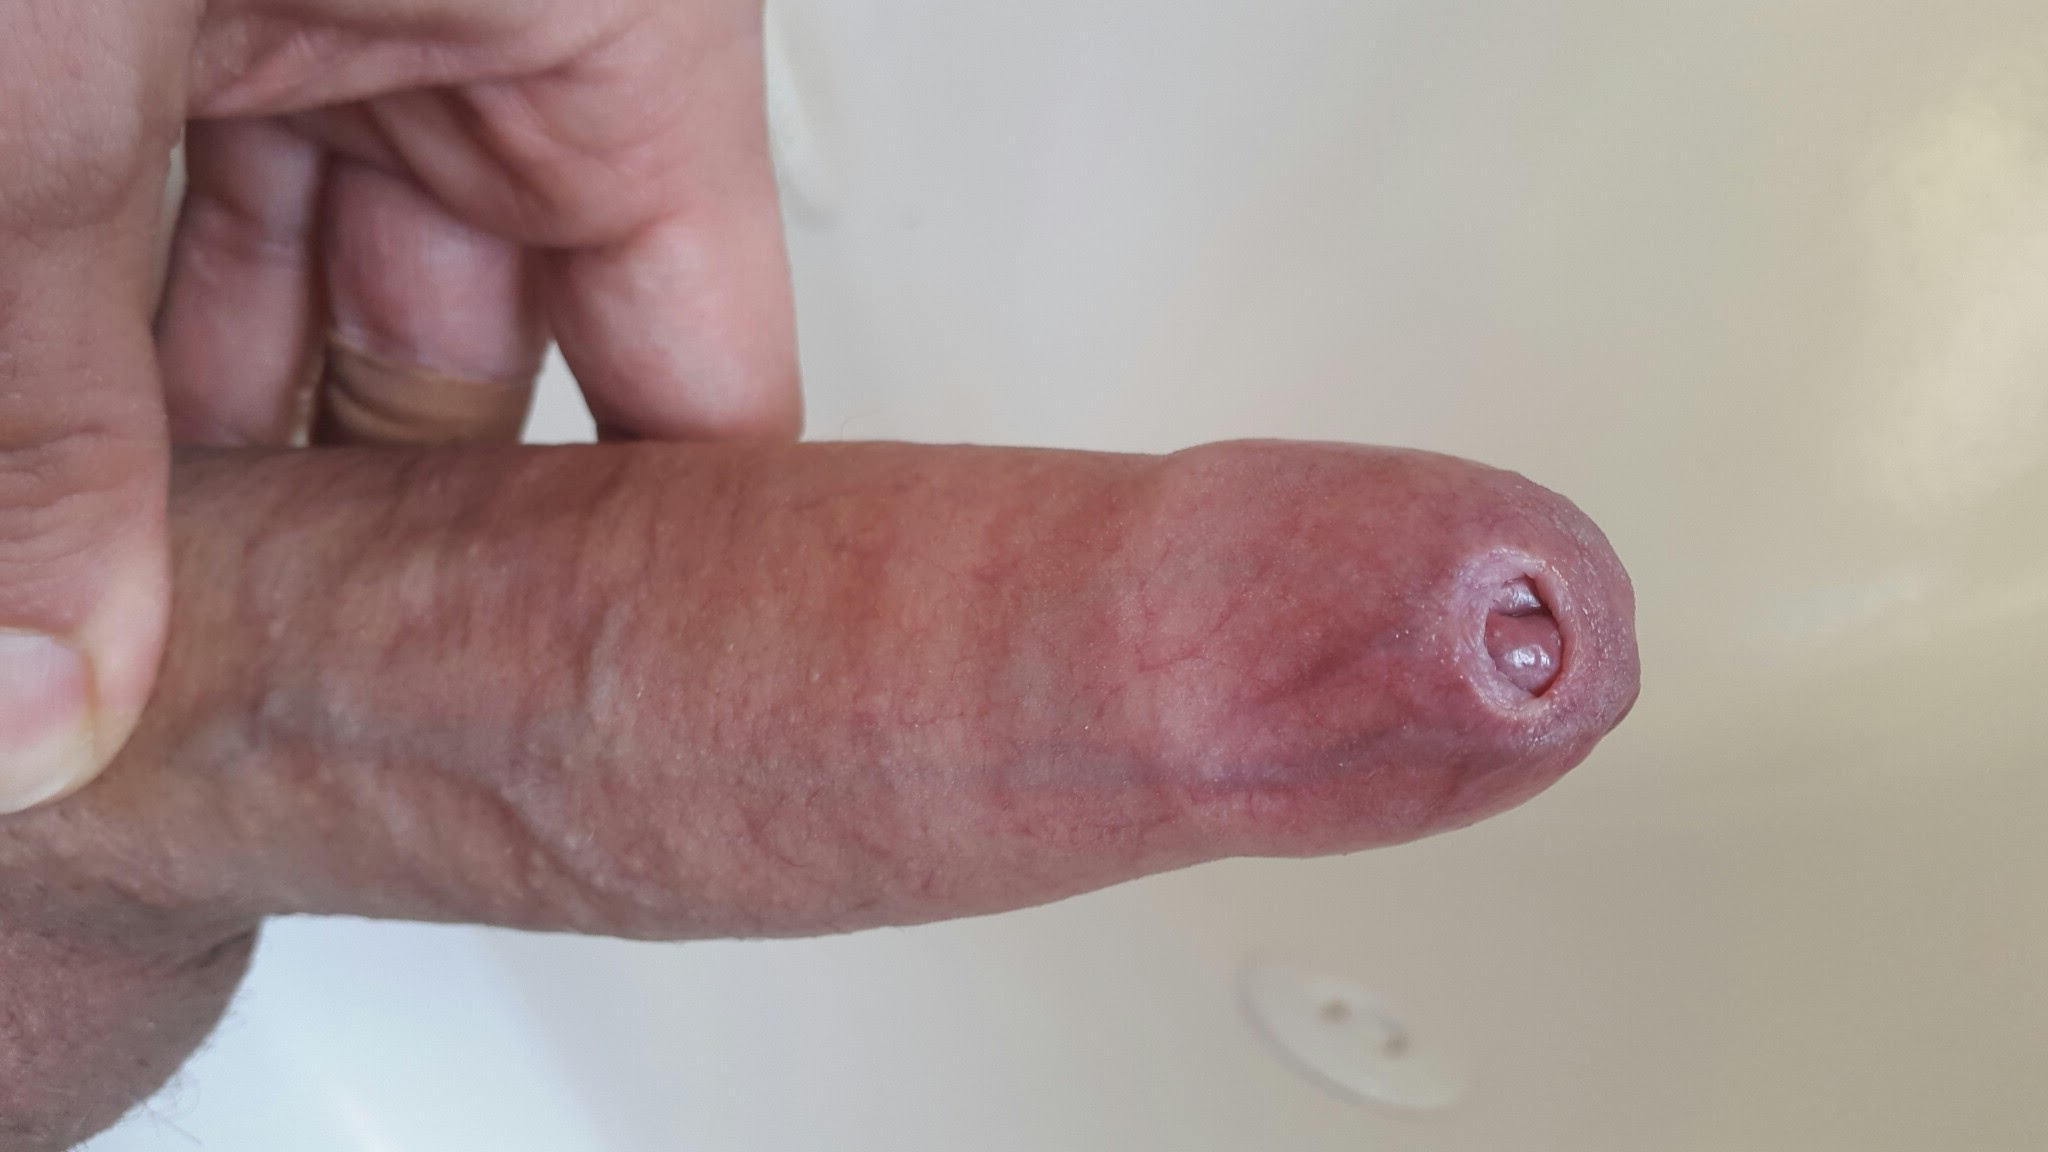 Penis with tight foreskin